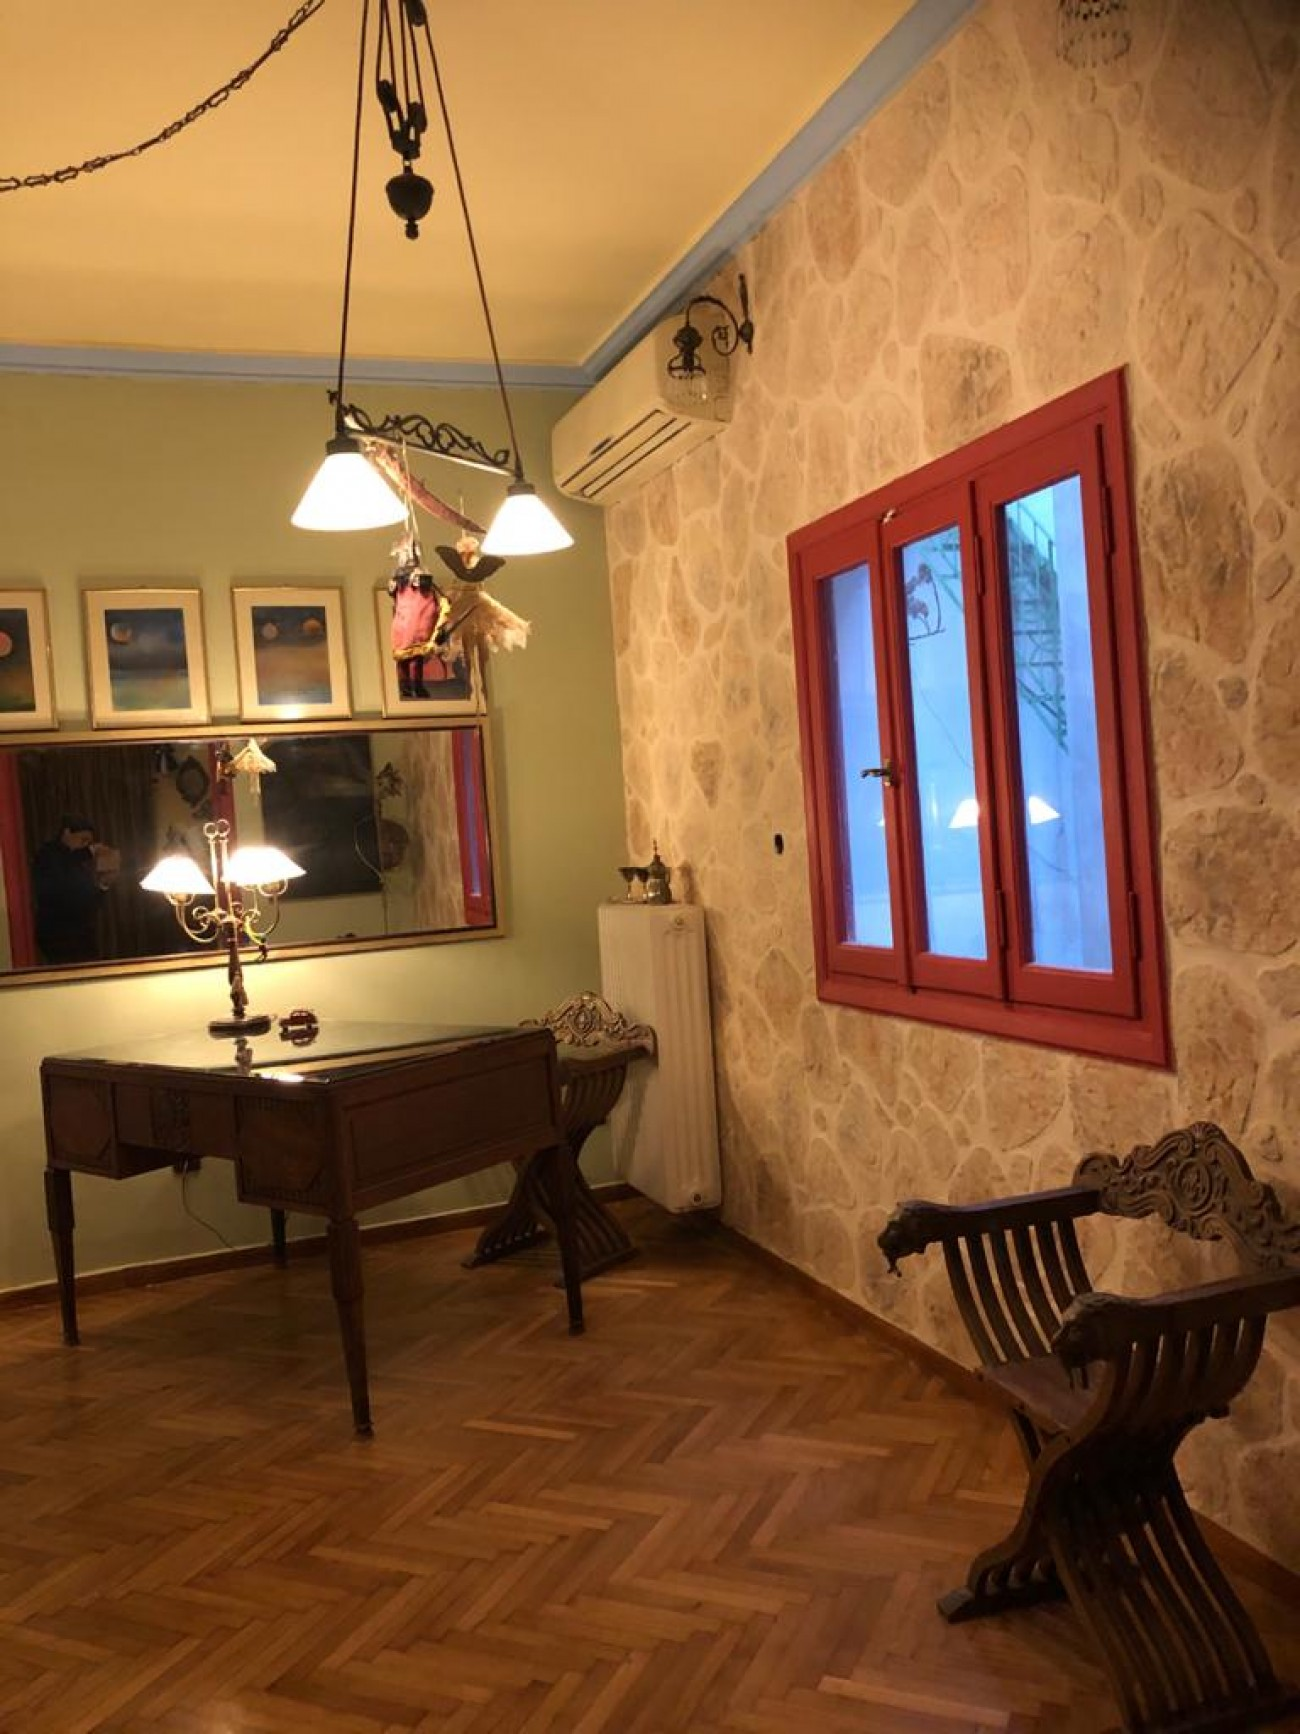 Apartment for Rent in Attikis Square, Athens City Center, Greece